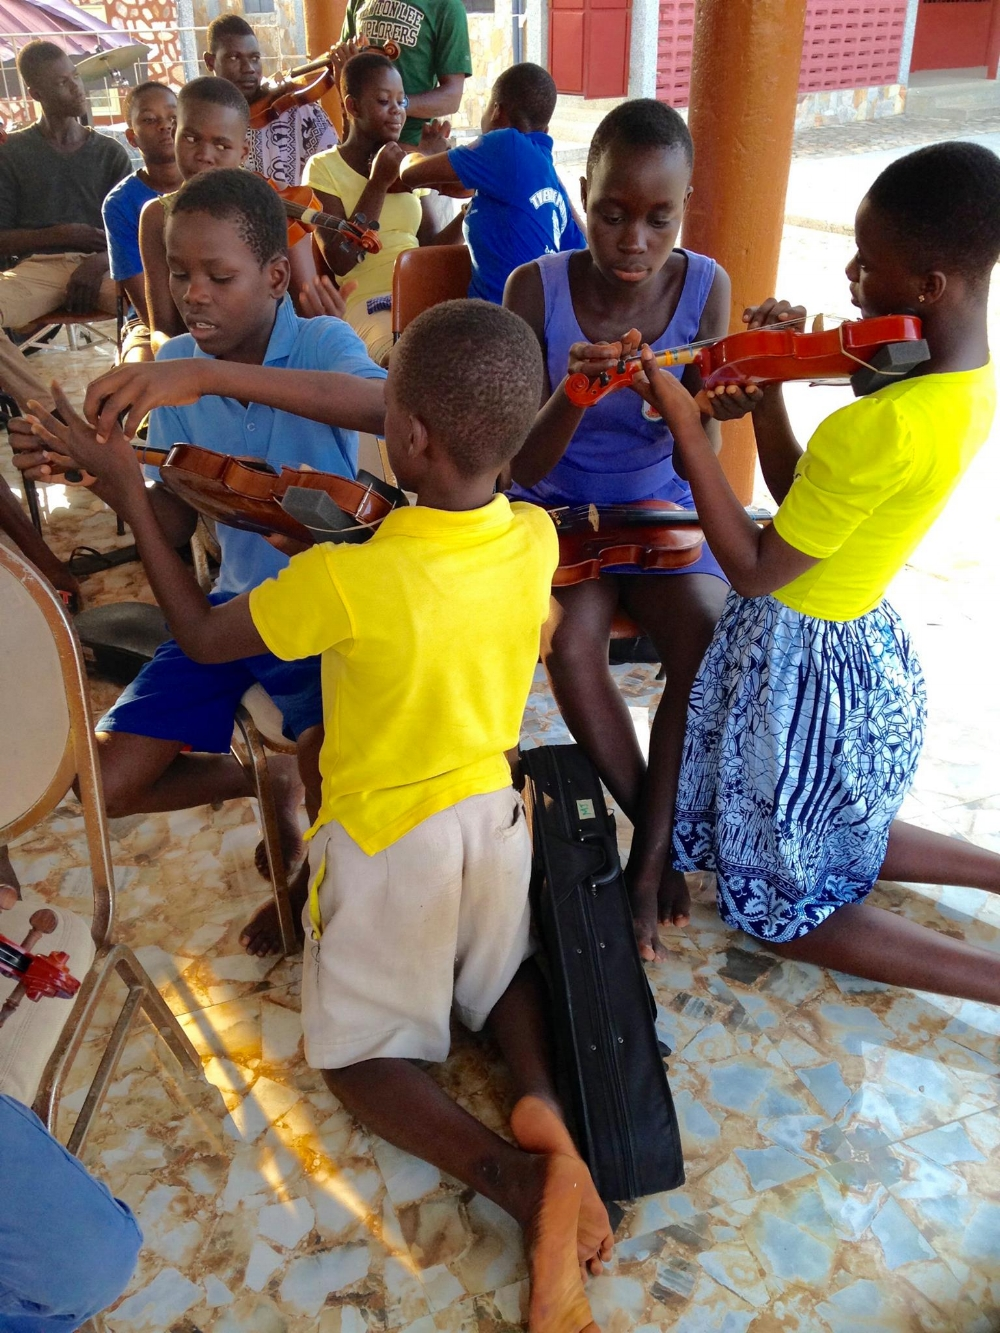 Nunya students helping each other adjust left hand position on the violin